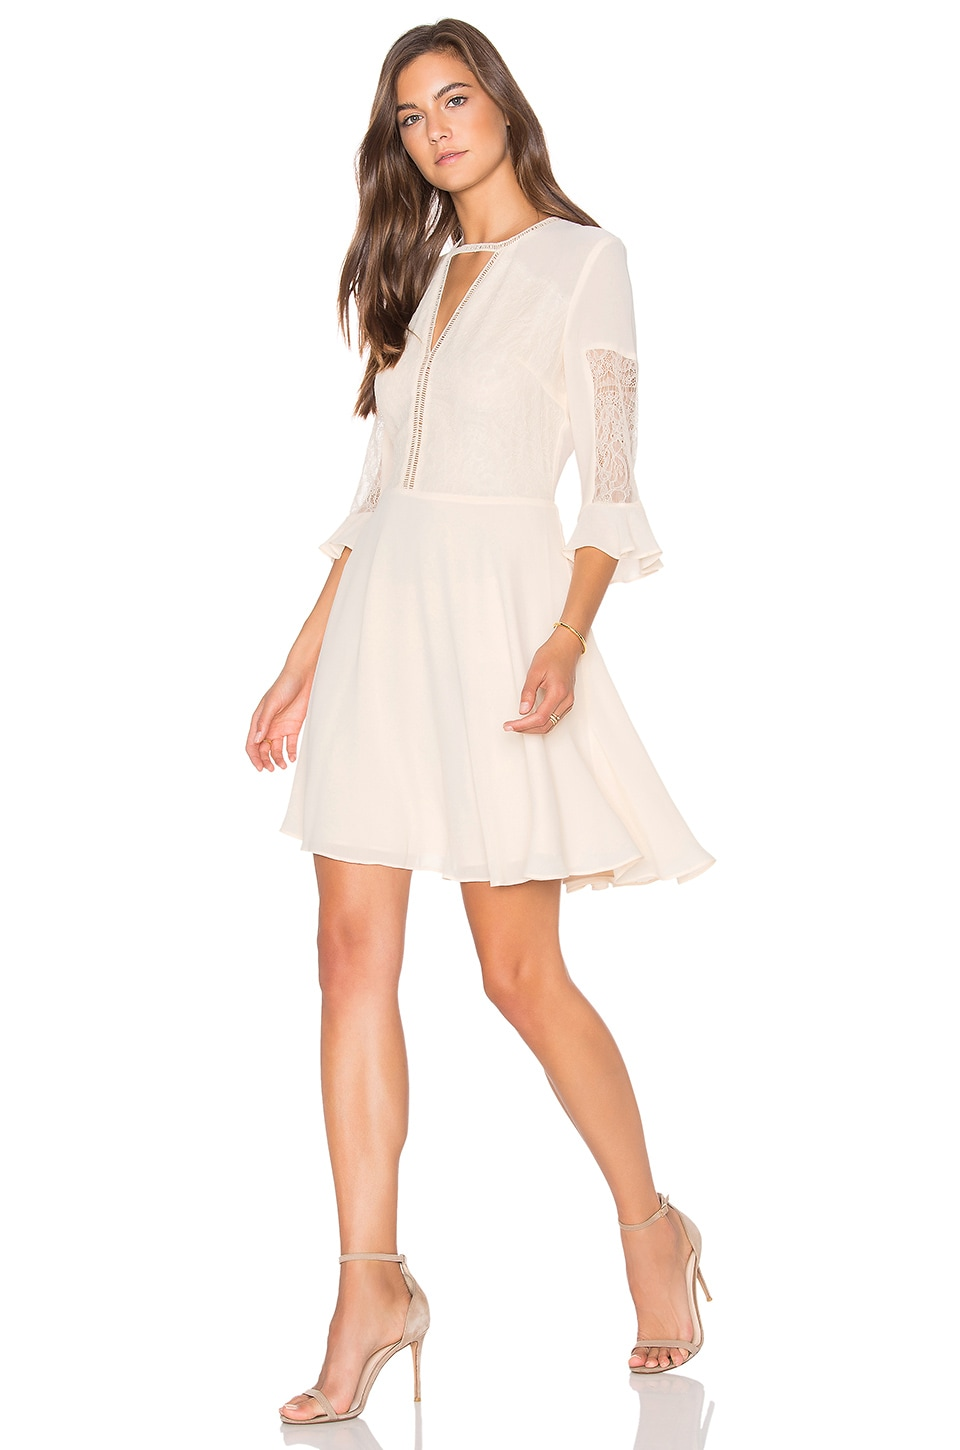 Lucy Paris Cassandra Dress in White